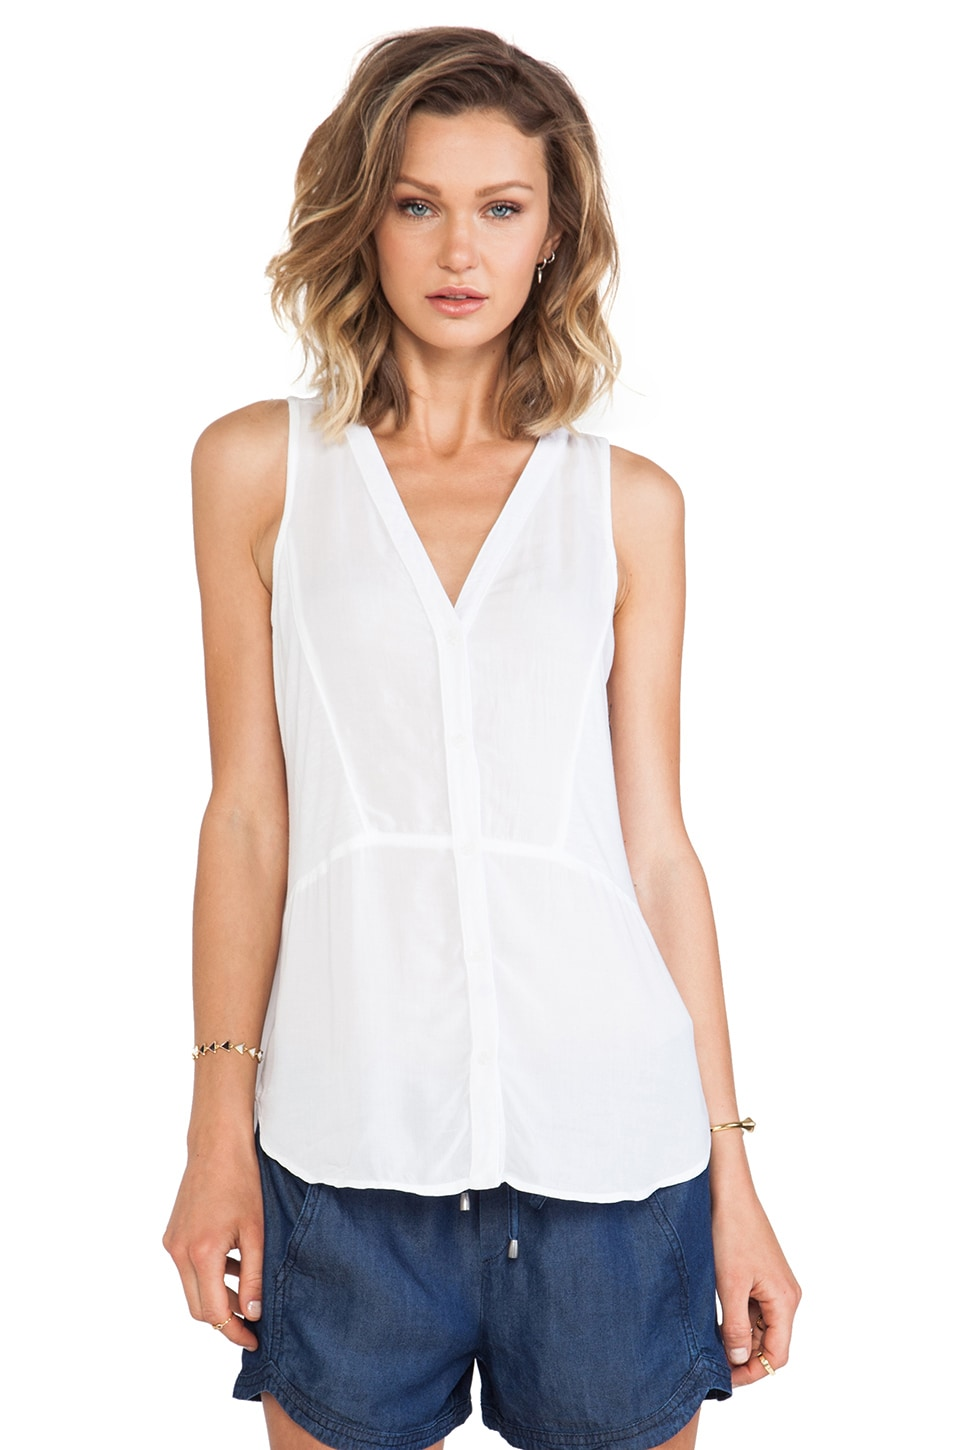 Splendid Always Shirting Tank in White